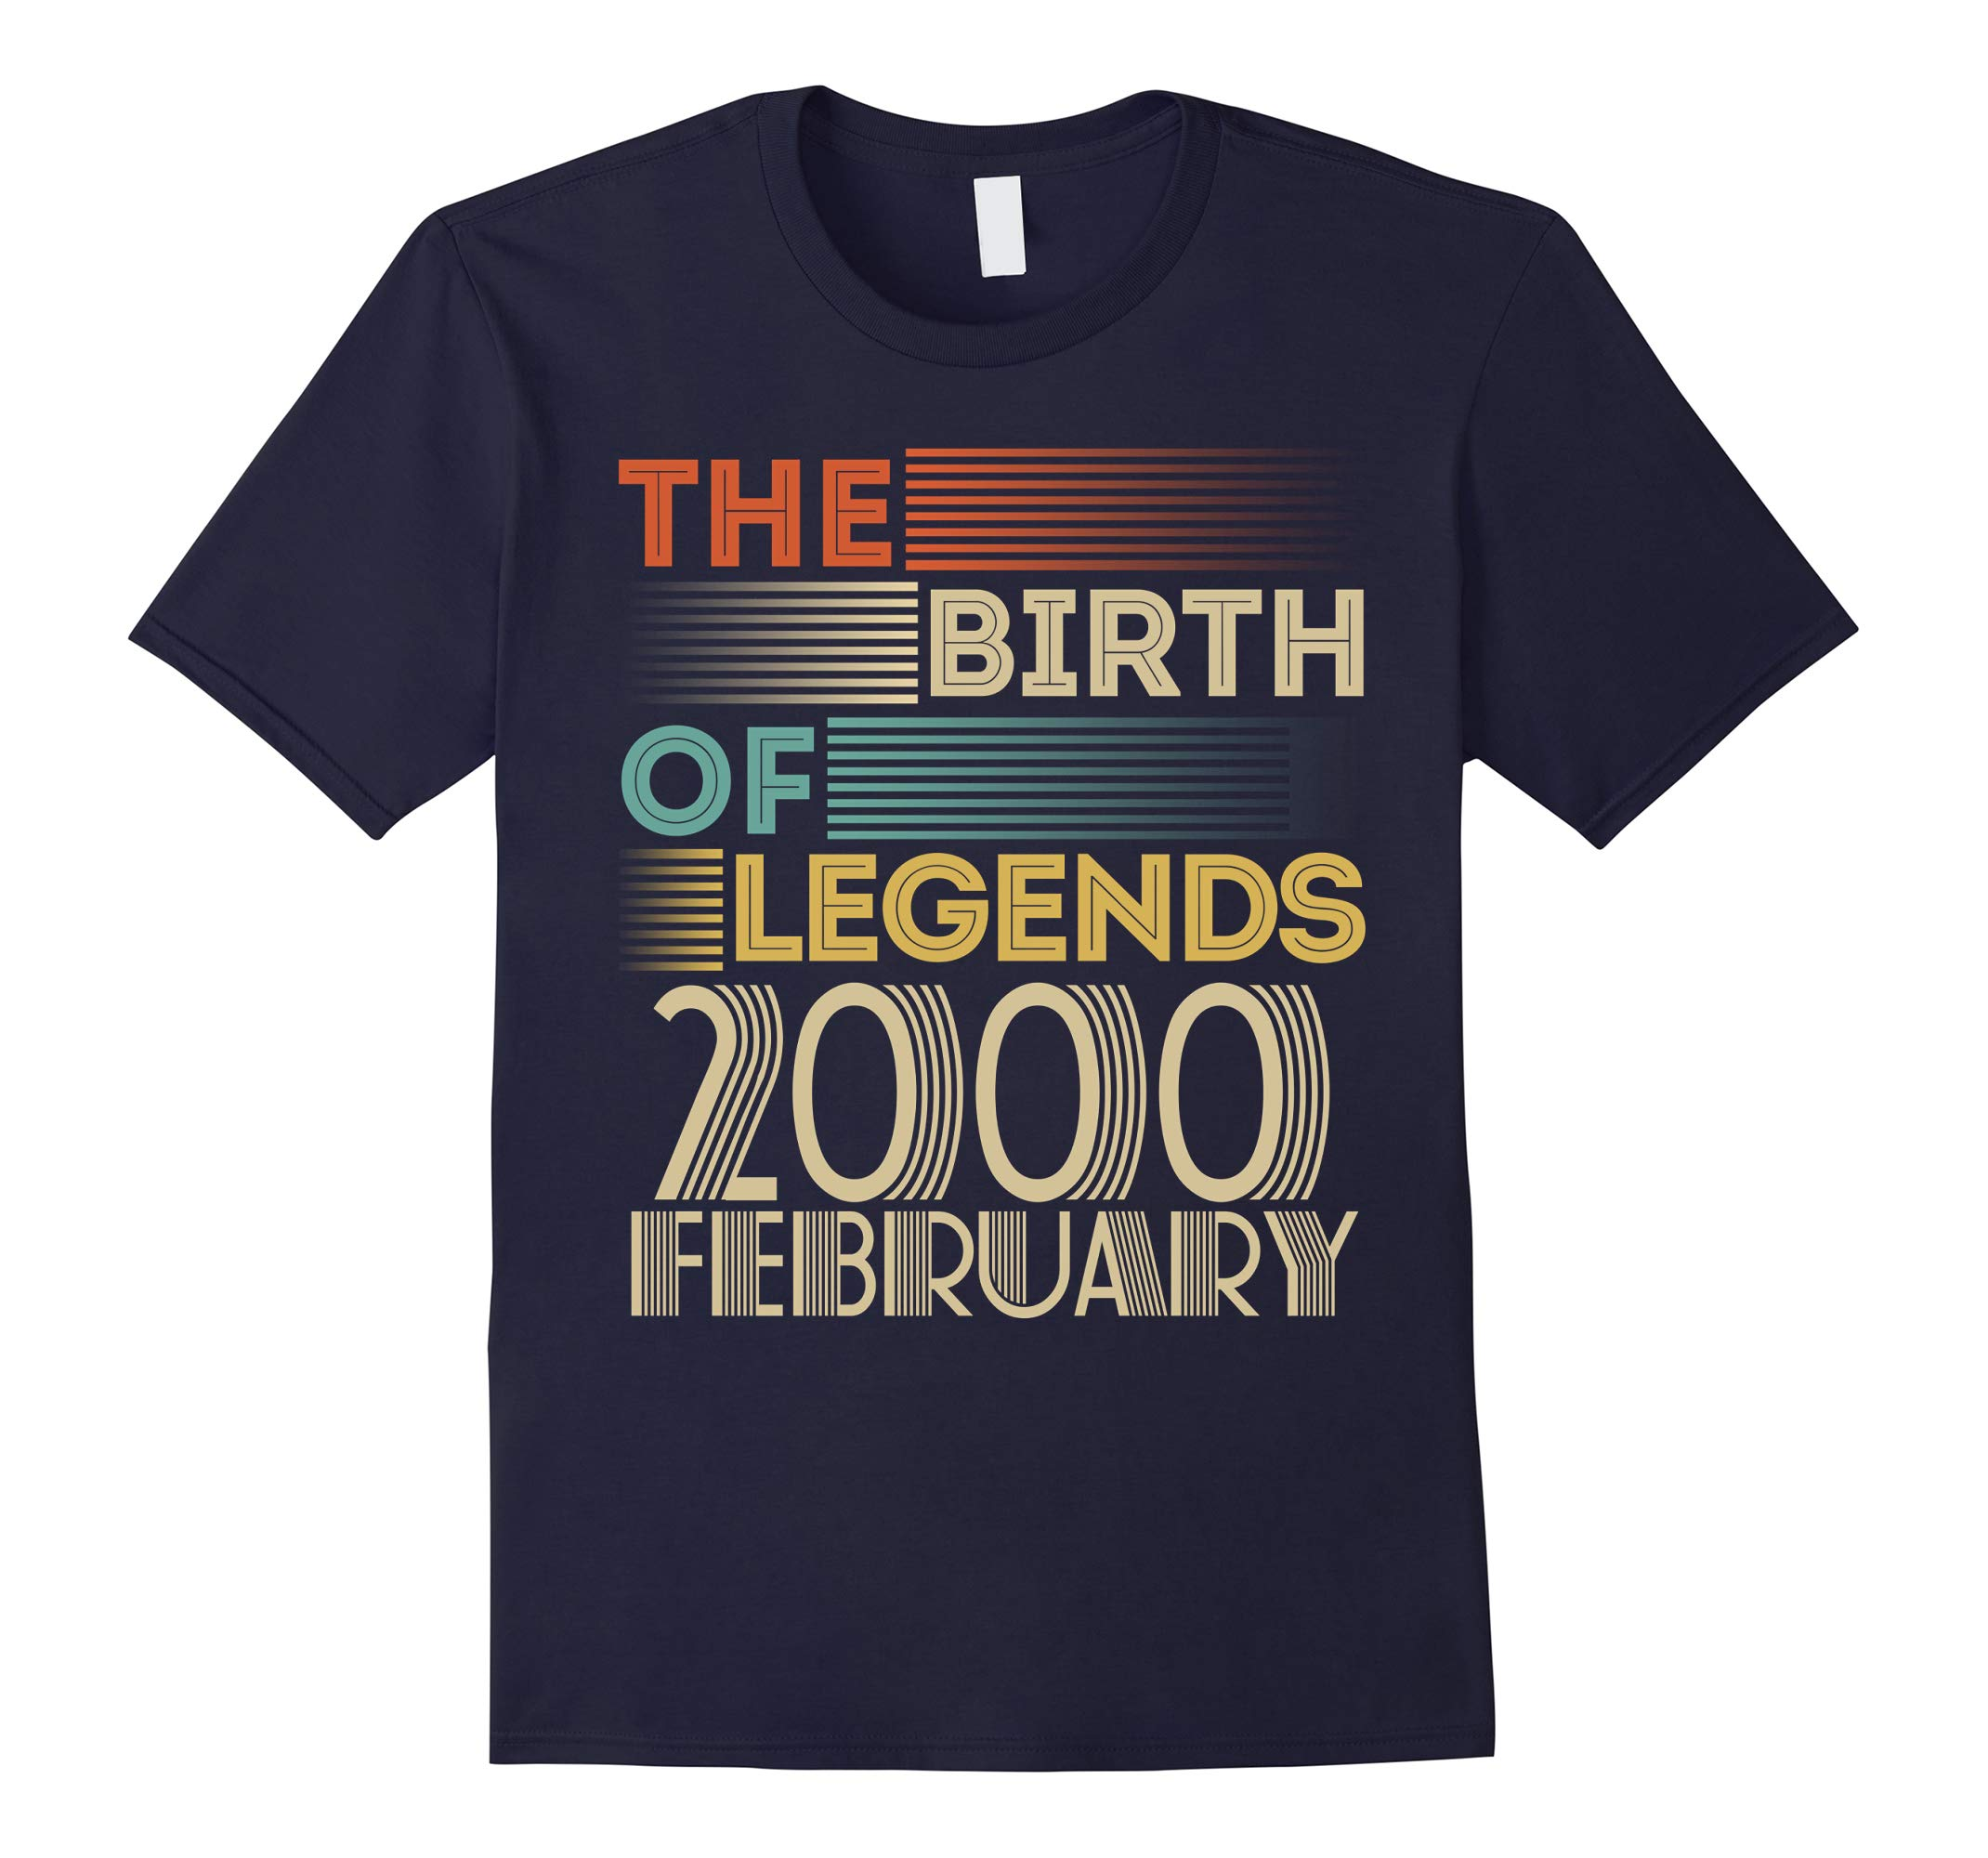 2000 FEBRUARY Vintage The Birth Of Legends 18 Yrs Years Old-RT